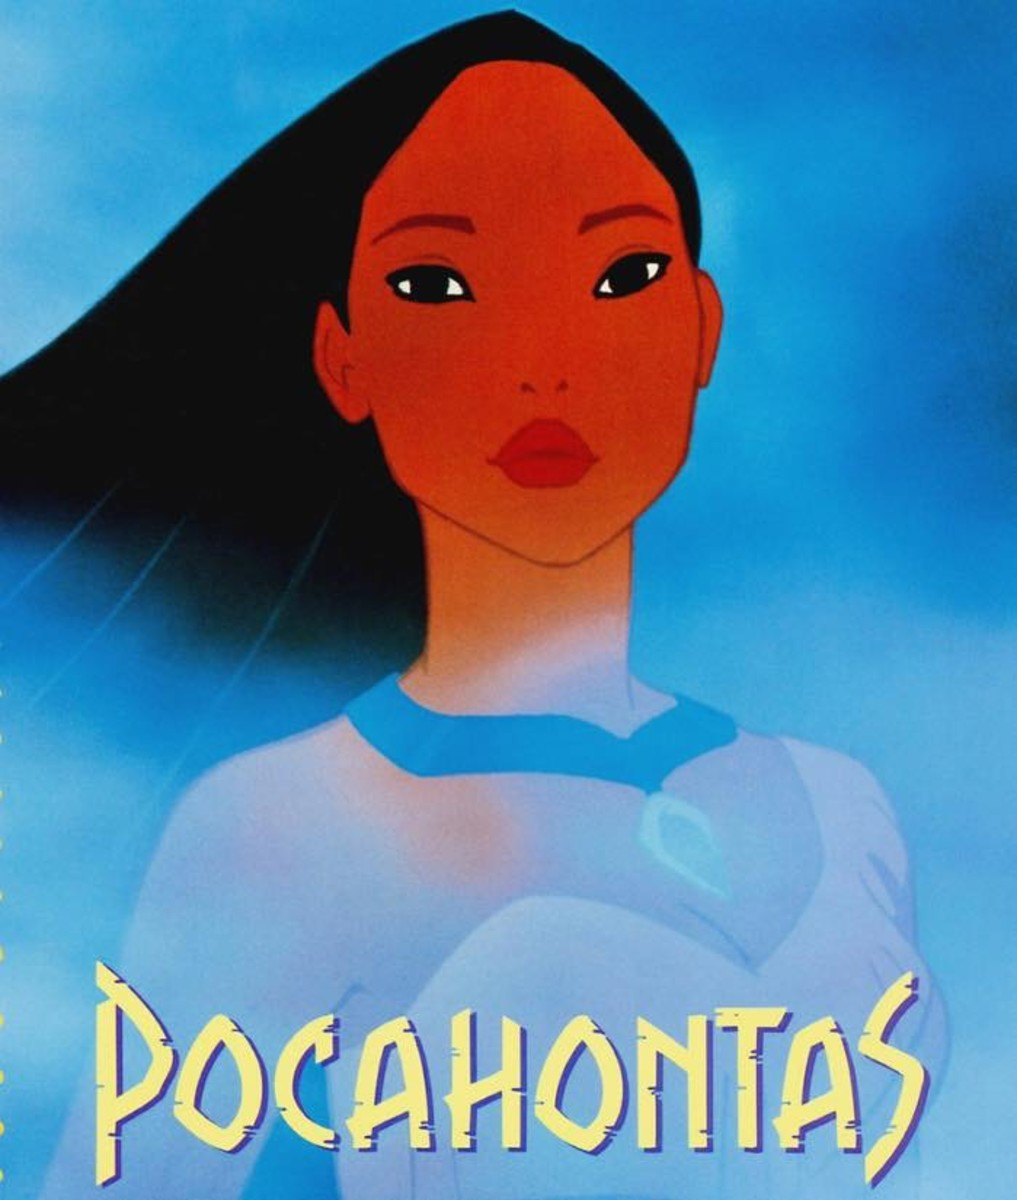 Disney's Pocahontas. In the summer of 1995, Pocahontas became Disney's 33rd animated feature film; the first mainstream Disney film with a Native American heroine.